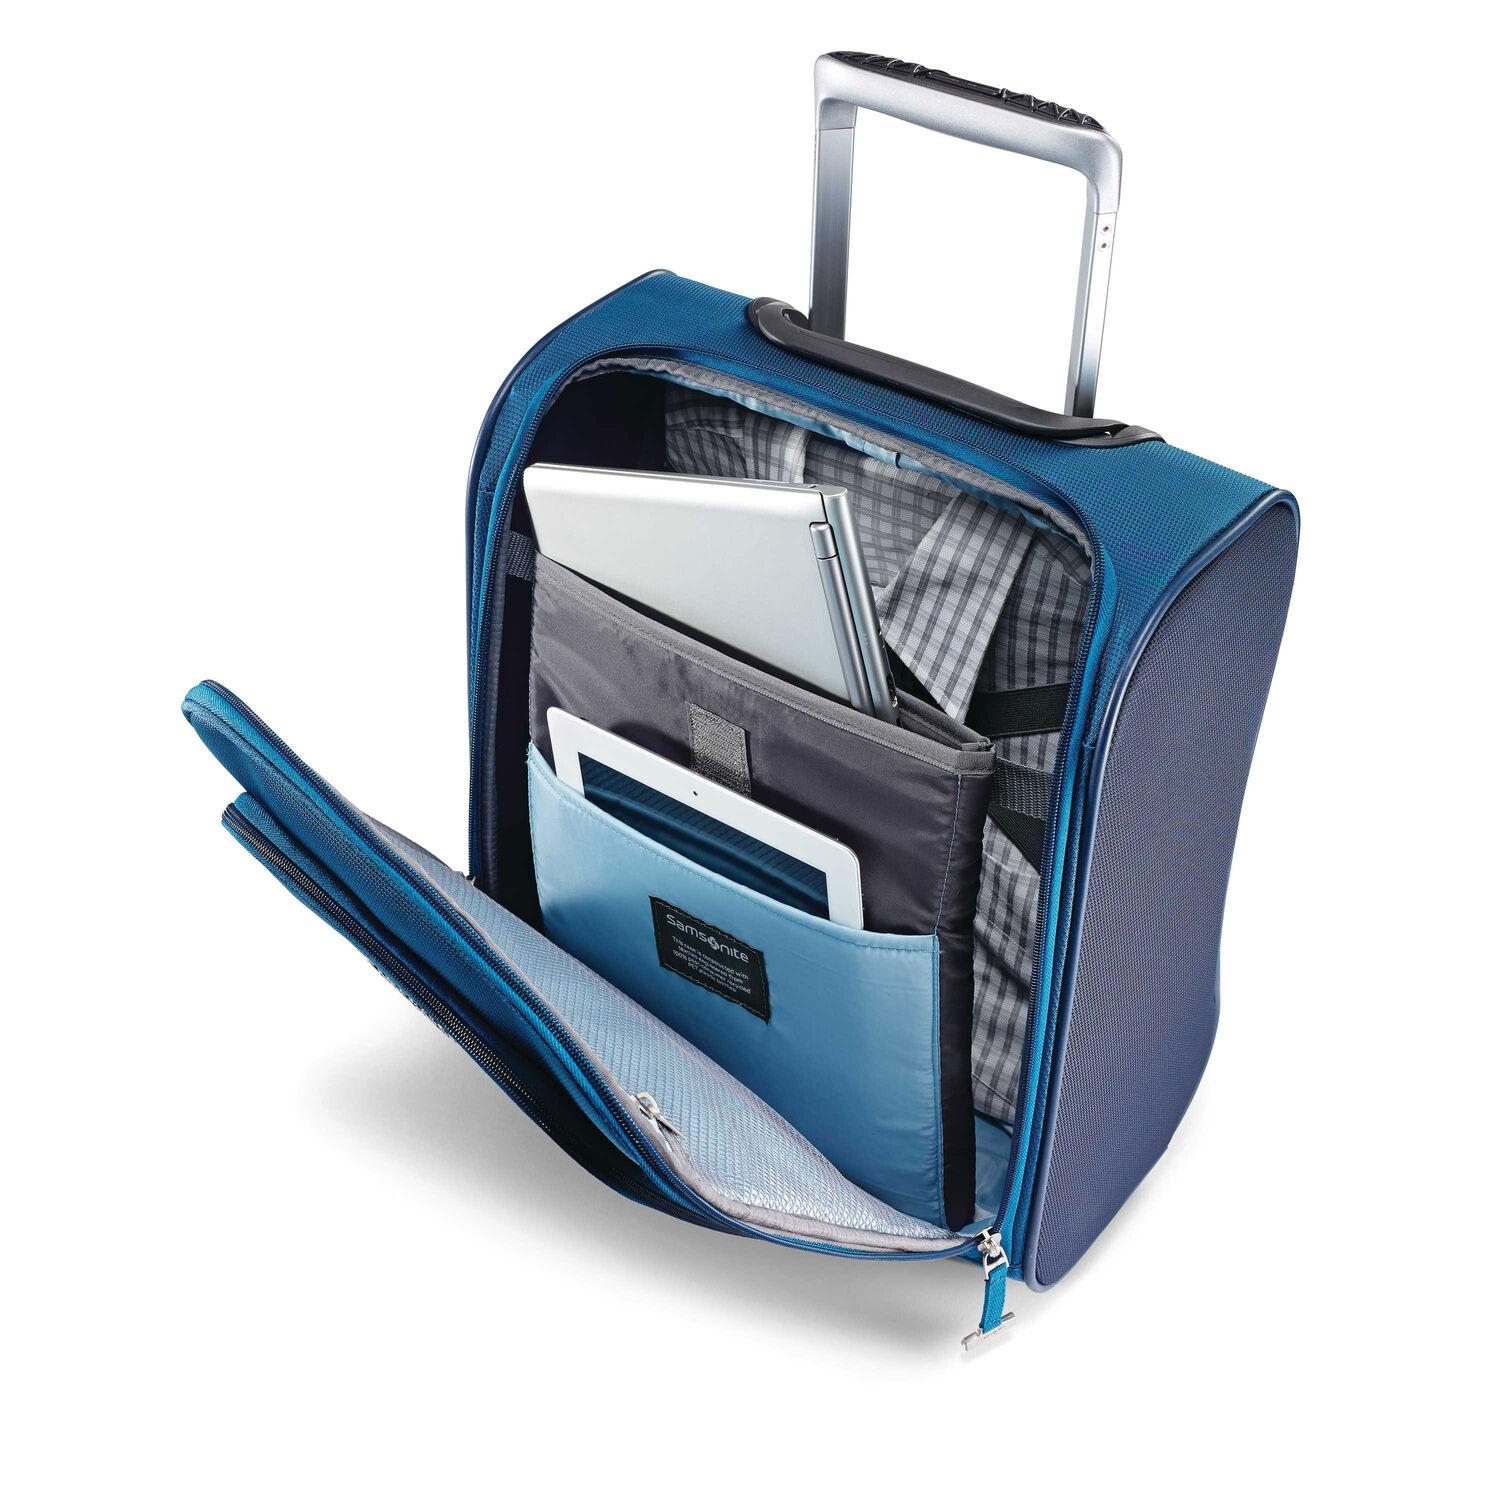 ae544221439 ... Samsonite Eco-Nu Wheeled Underseater Carry-On in the color Pacific  Blue Navy ...